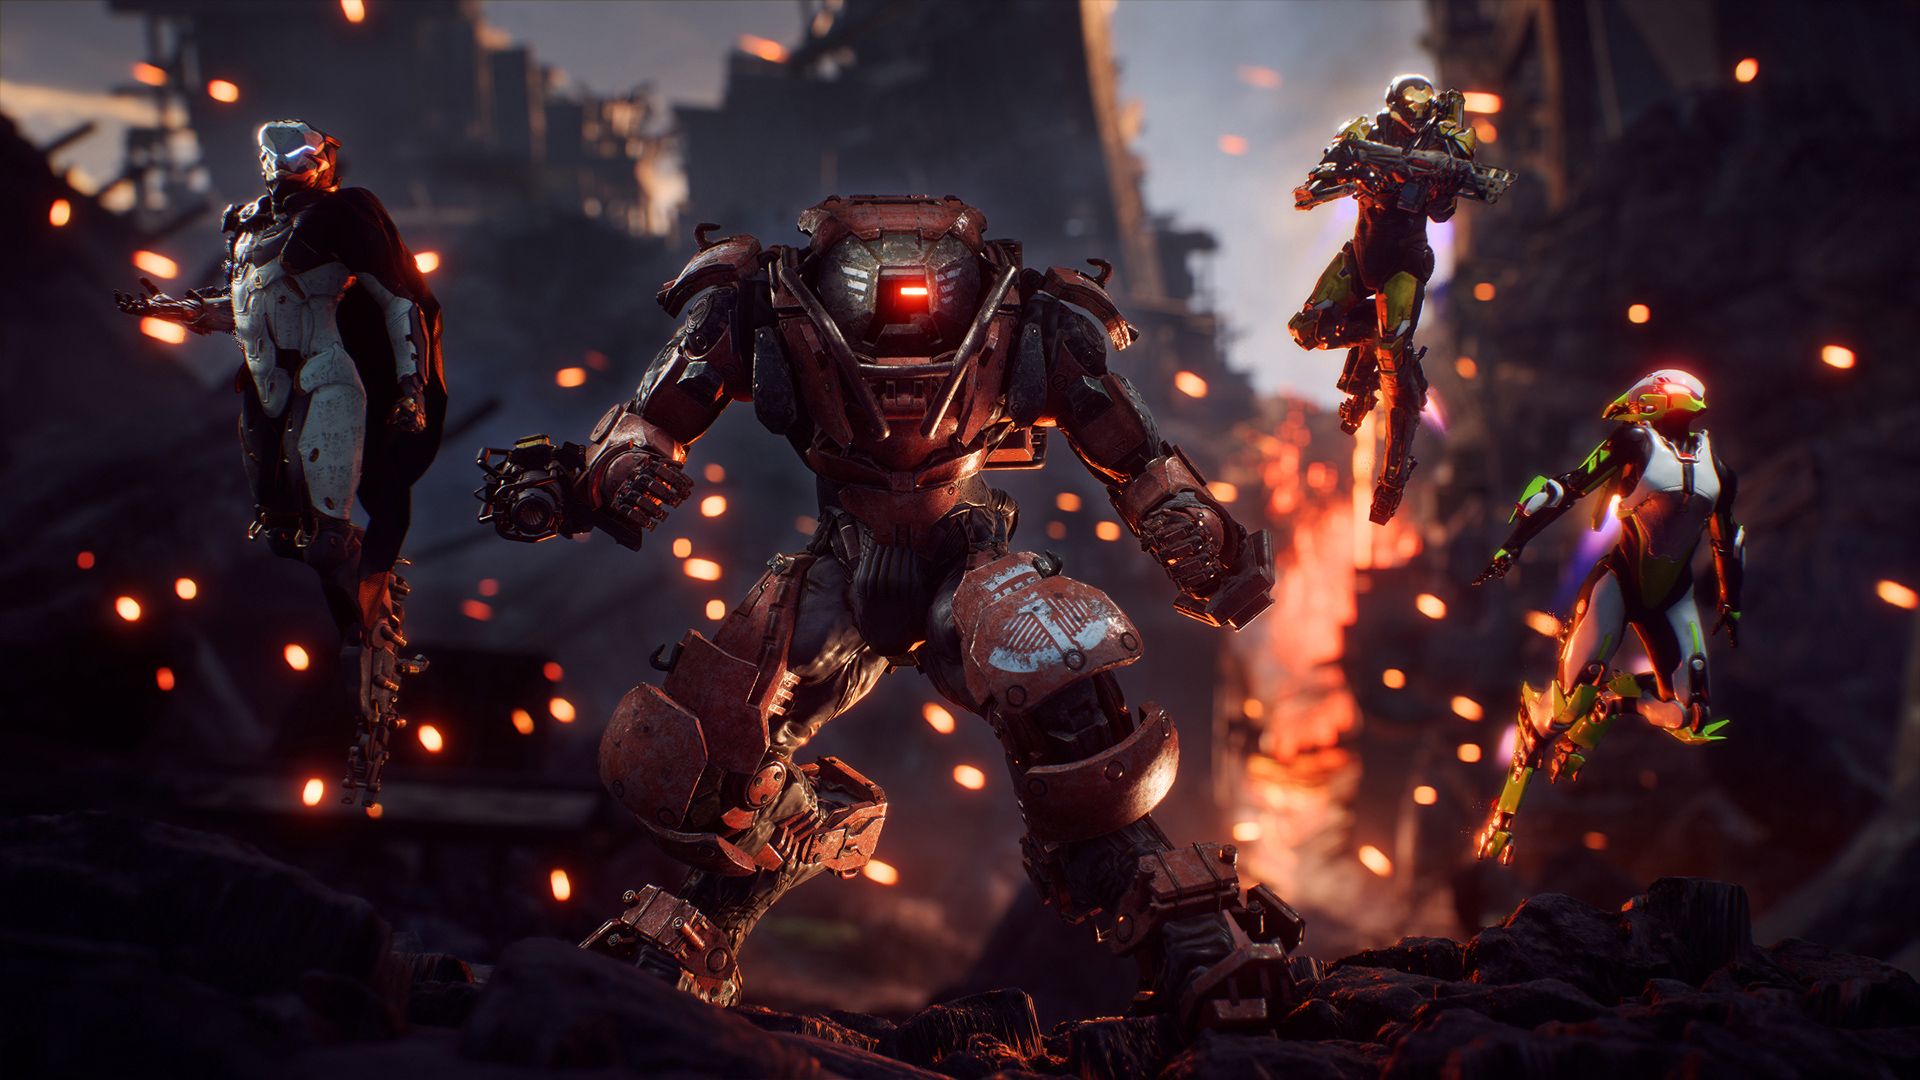 BioWare delays Anthem features, including its Cataclysm event